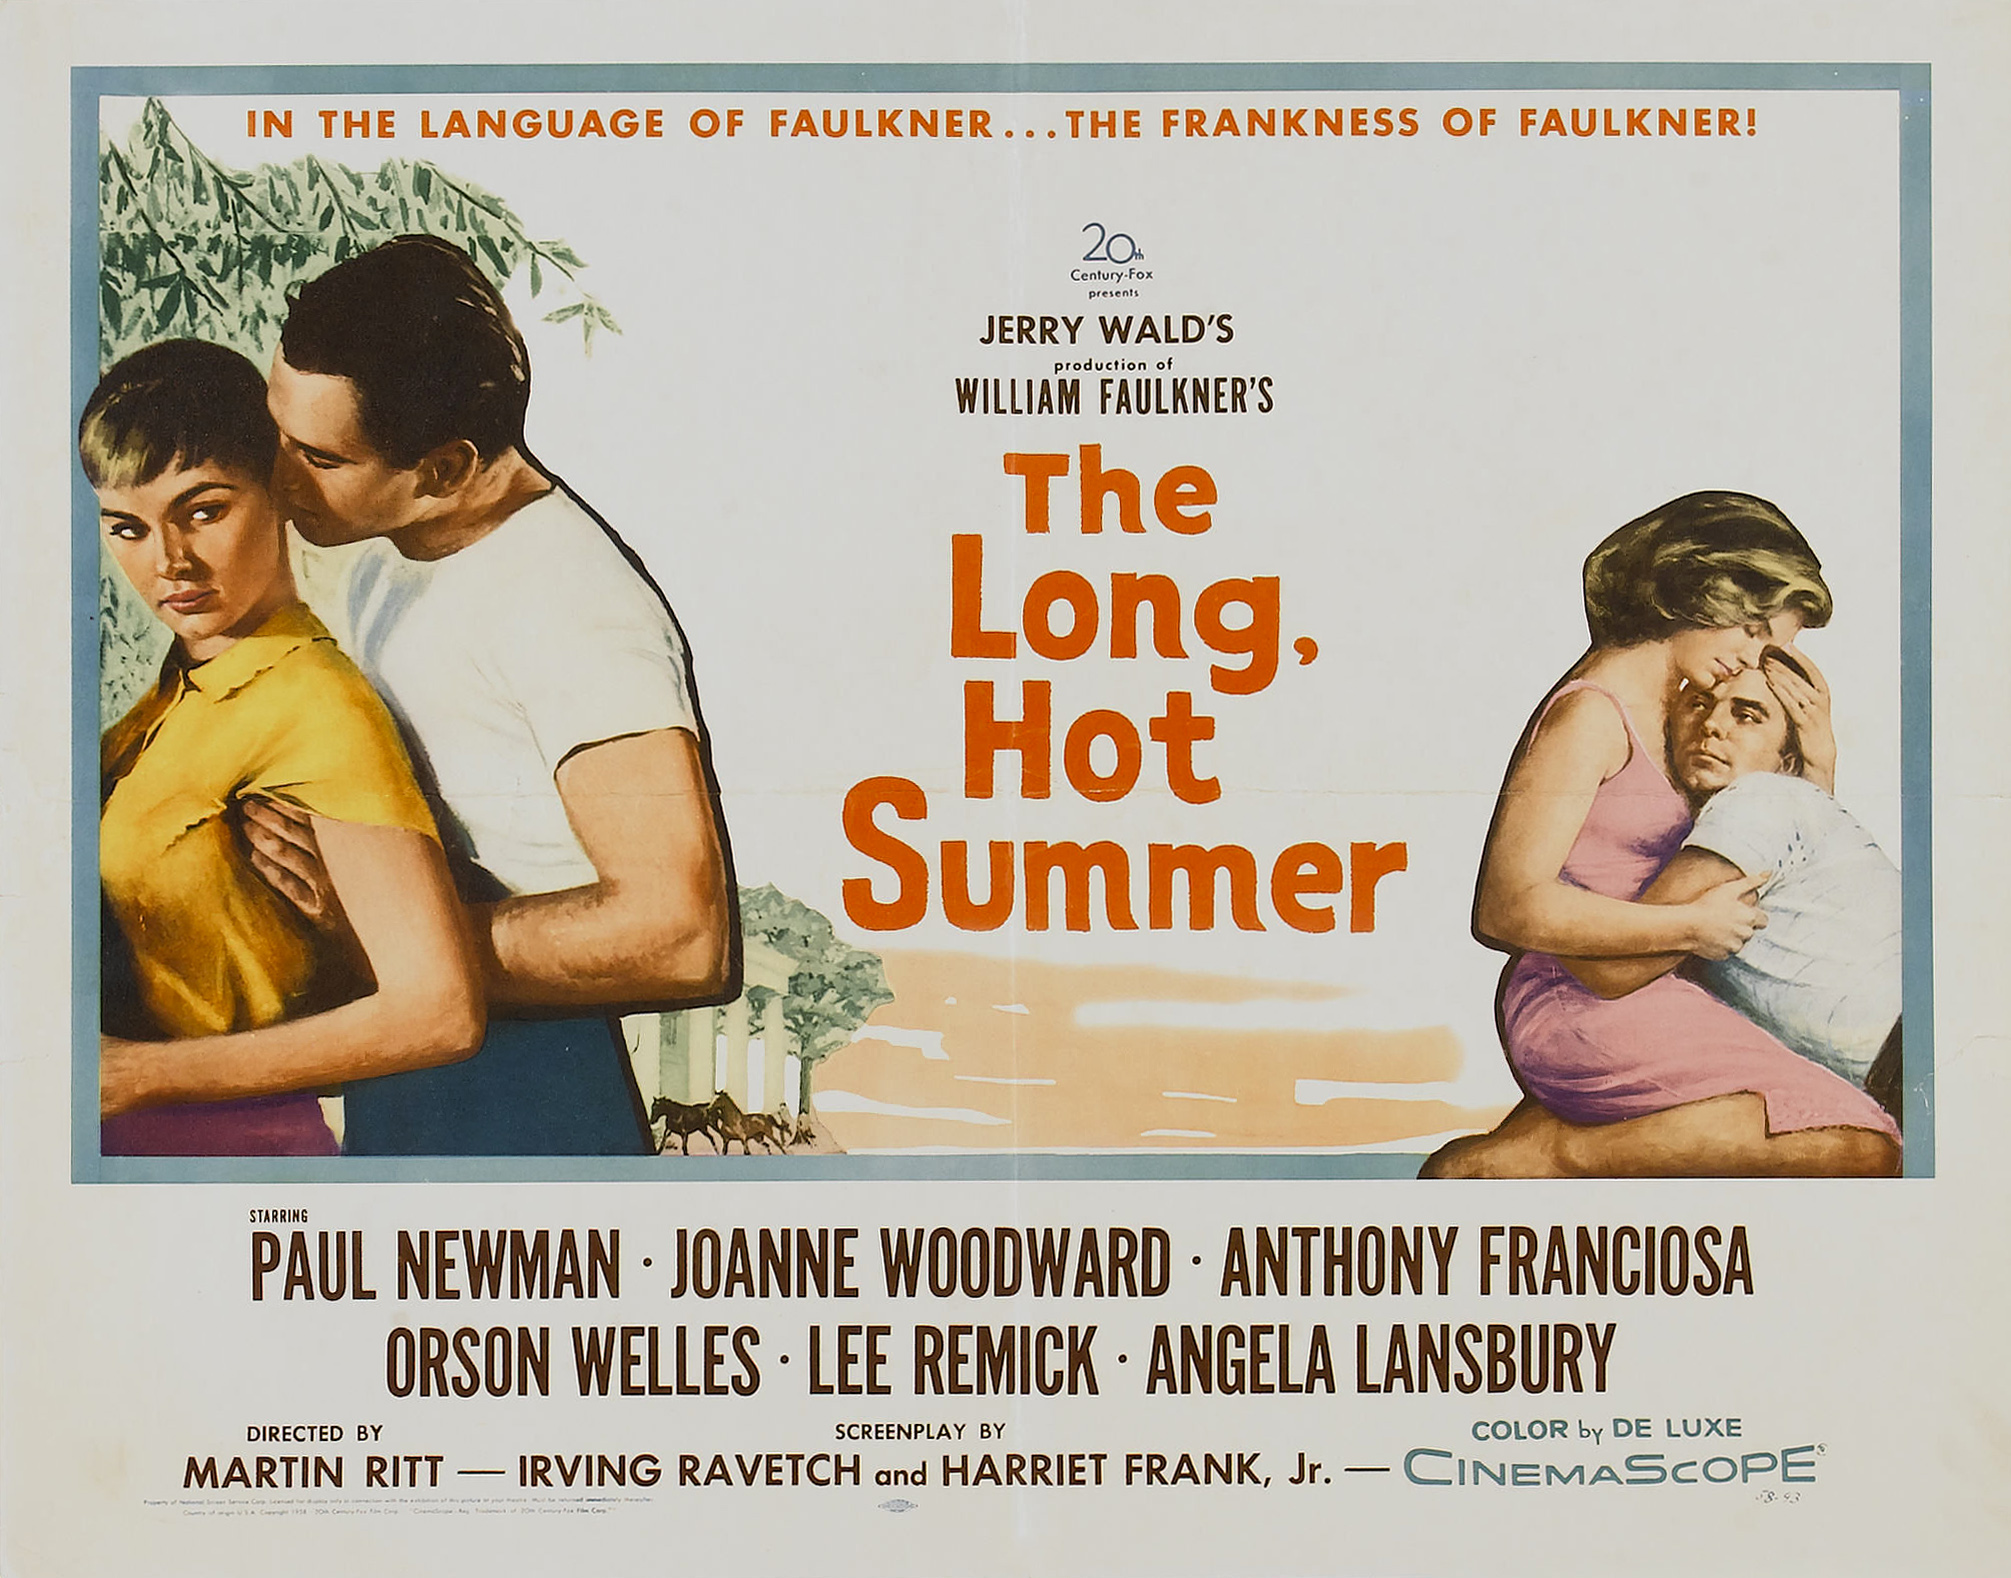 Poster - Long, Hot Summer, The_02